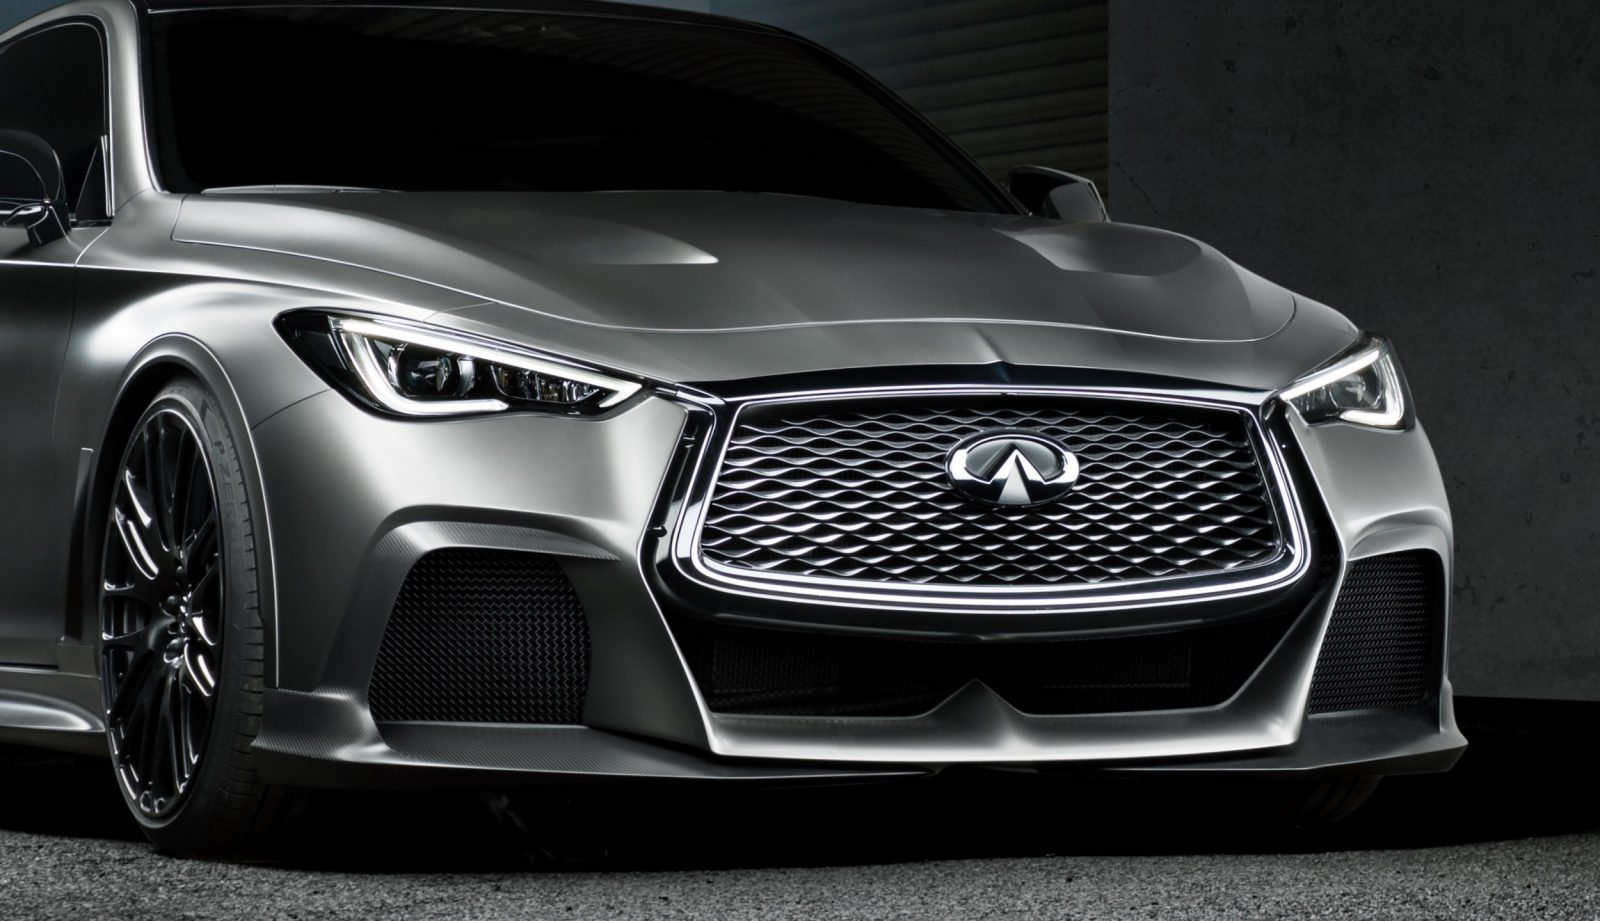 INFINITI - Project Black S FIRST image - 6 March 2017 8k